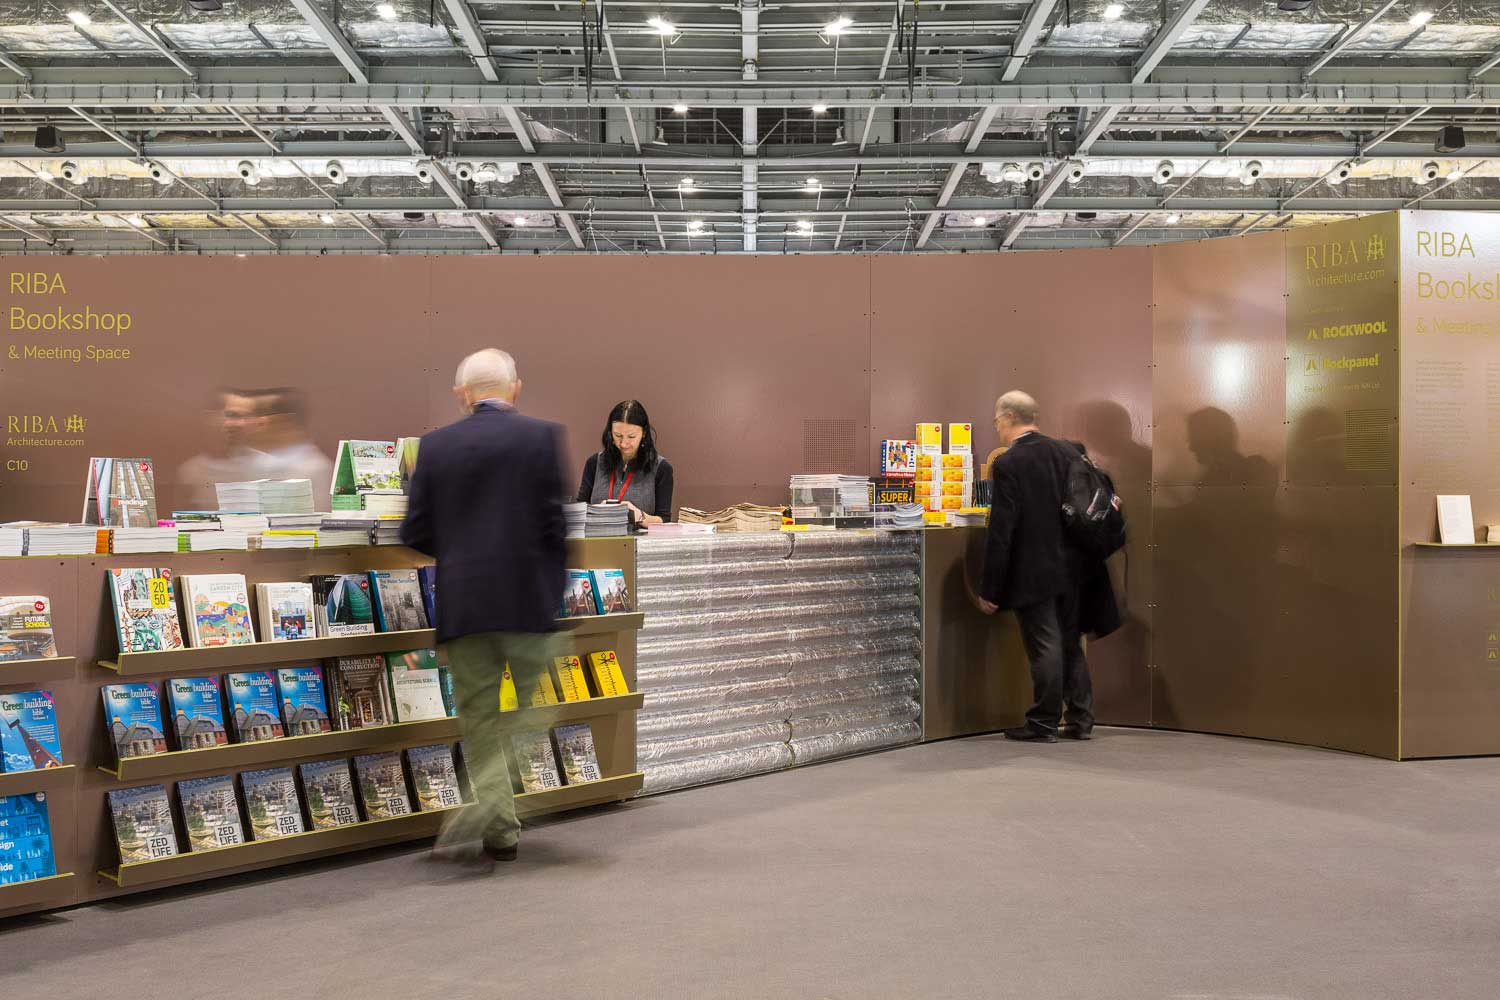 RIBA Bookshop & Meeting Space